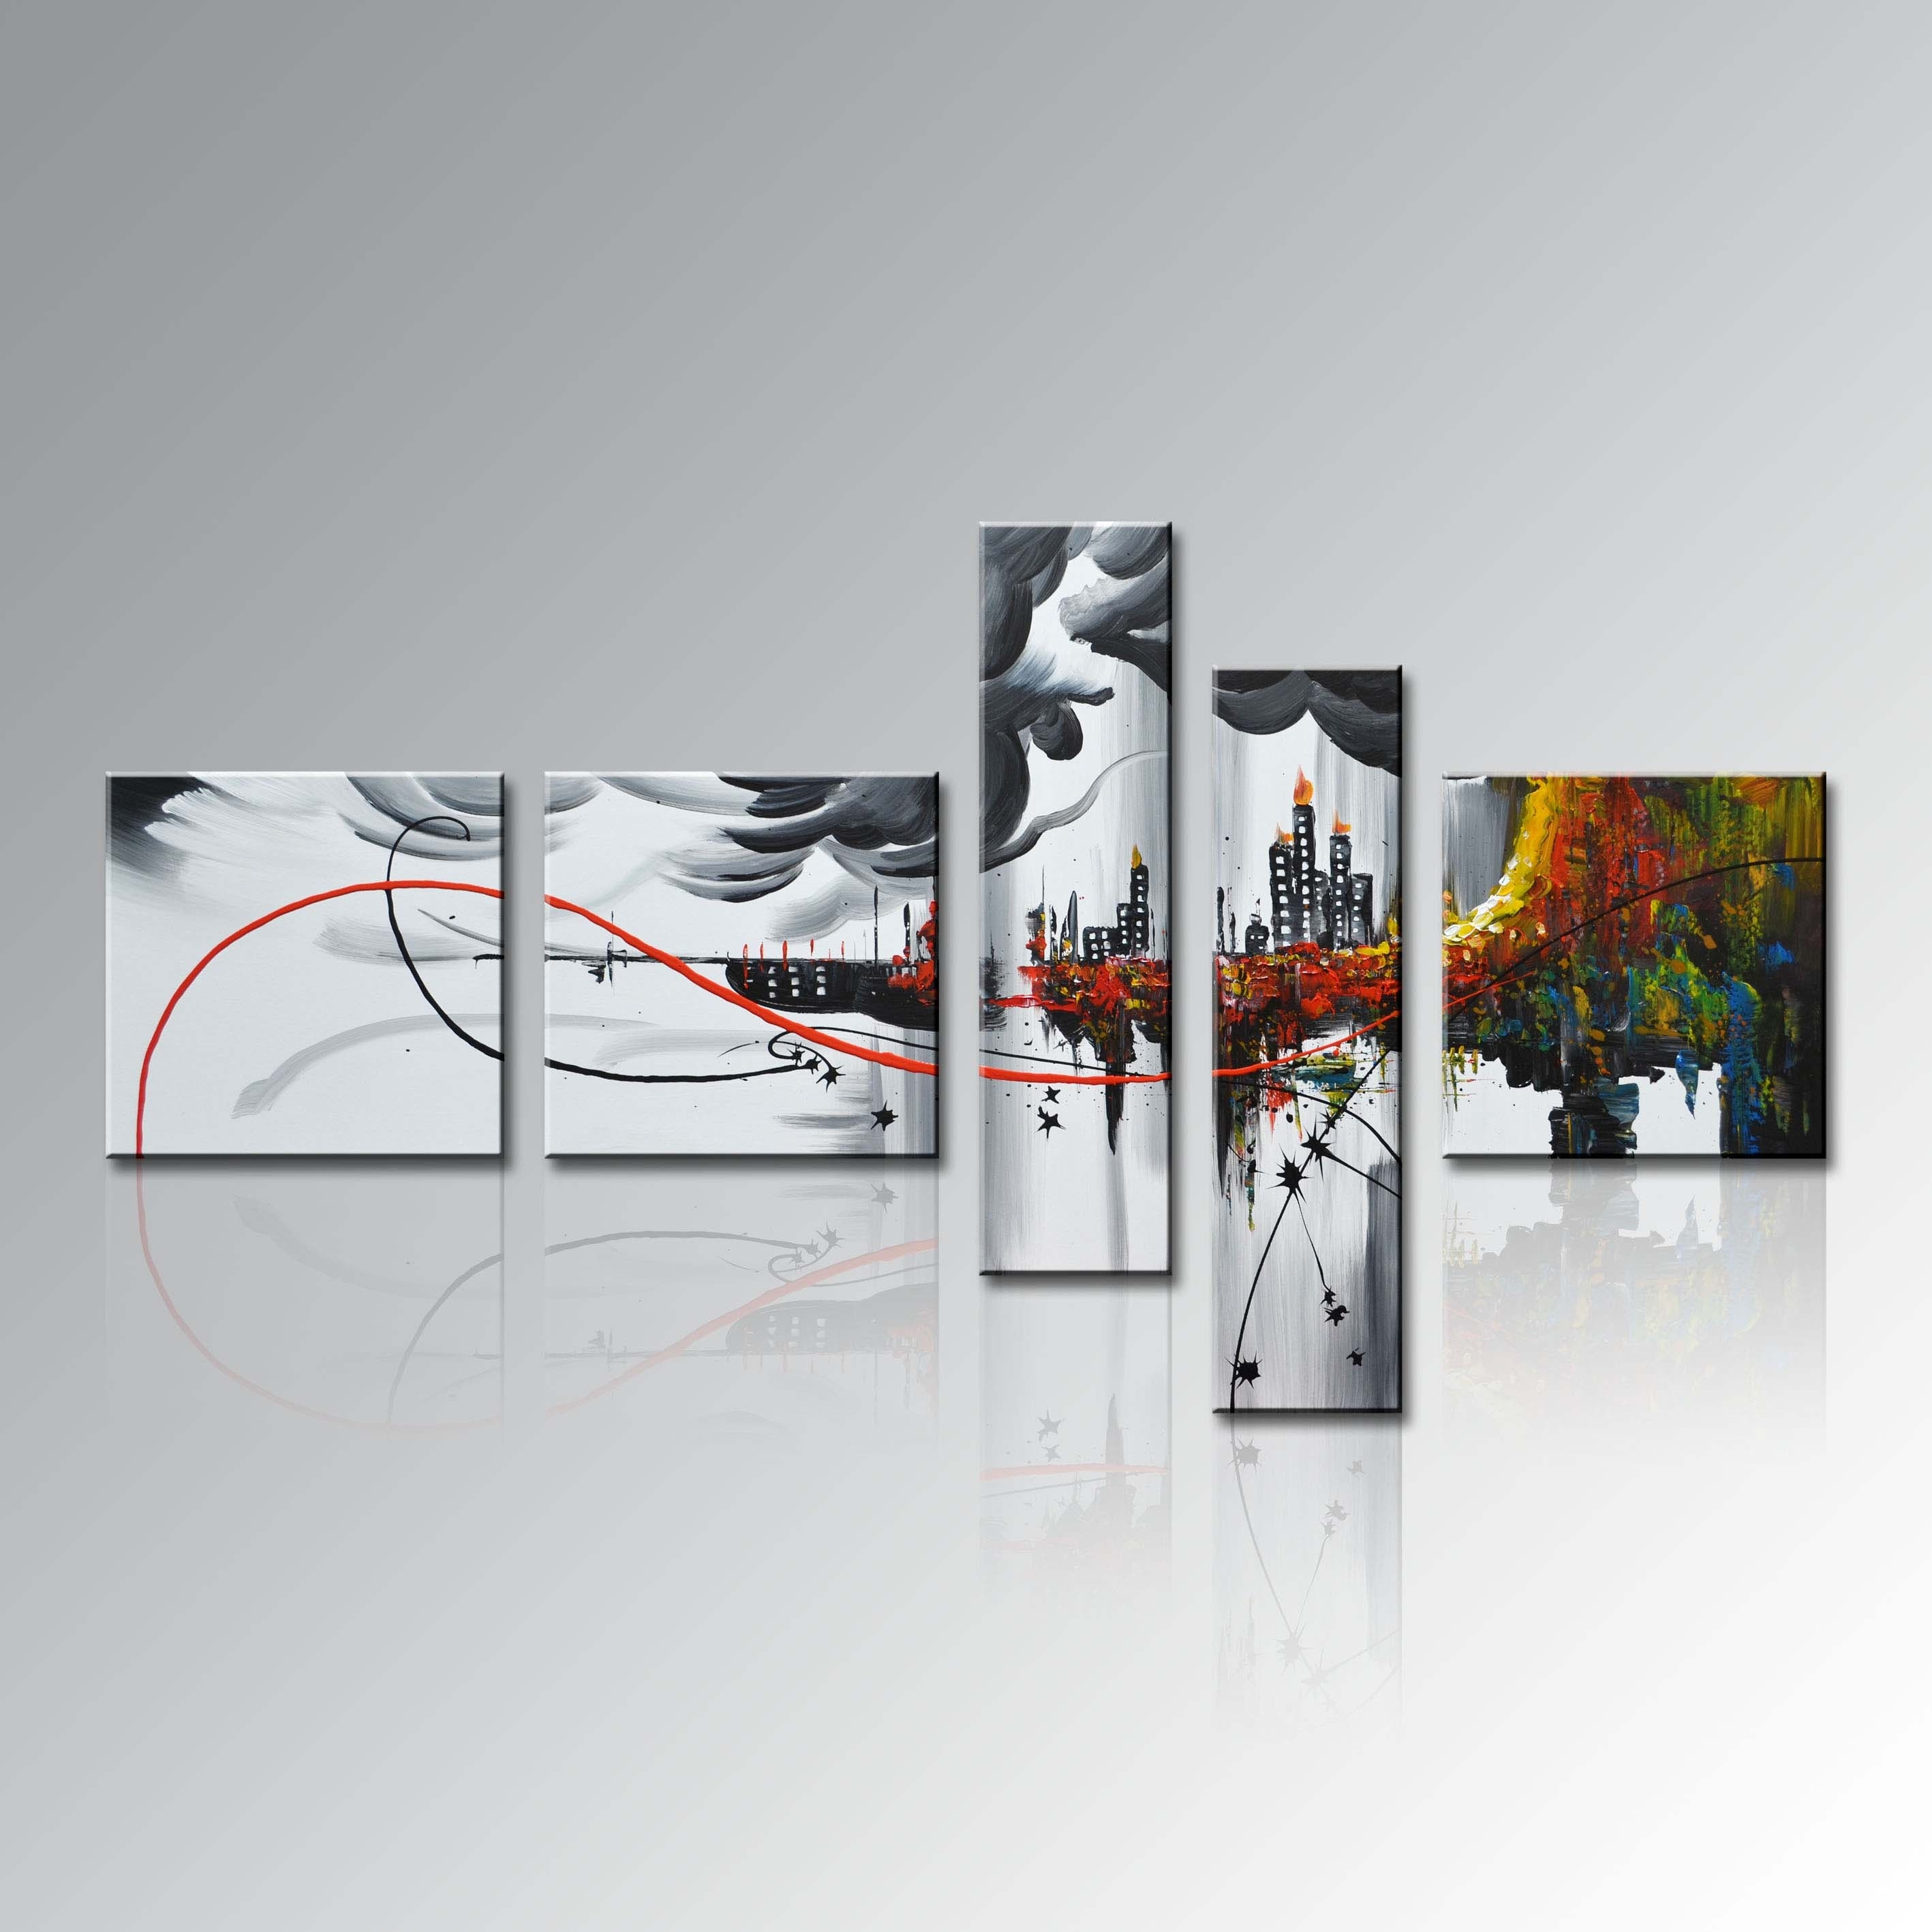 Wall Paintings For Home Modern Framed Home Decor Wall Art Abstract Pertaining To Most Recently Released Modern Framed Wall Art Canvas (View 4 of 20)